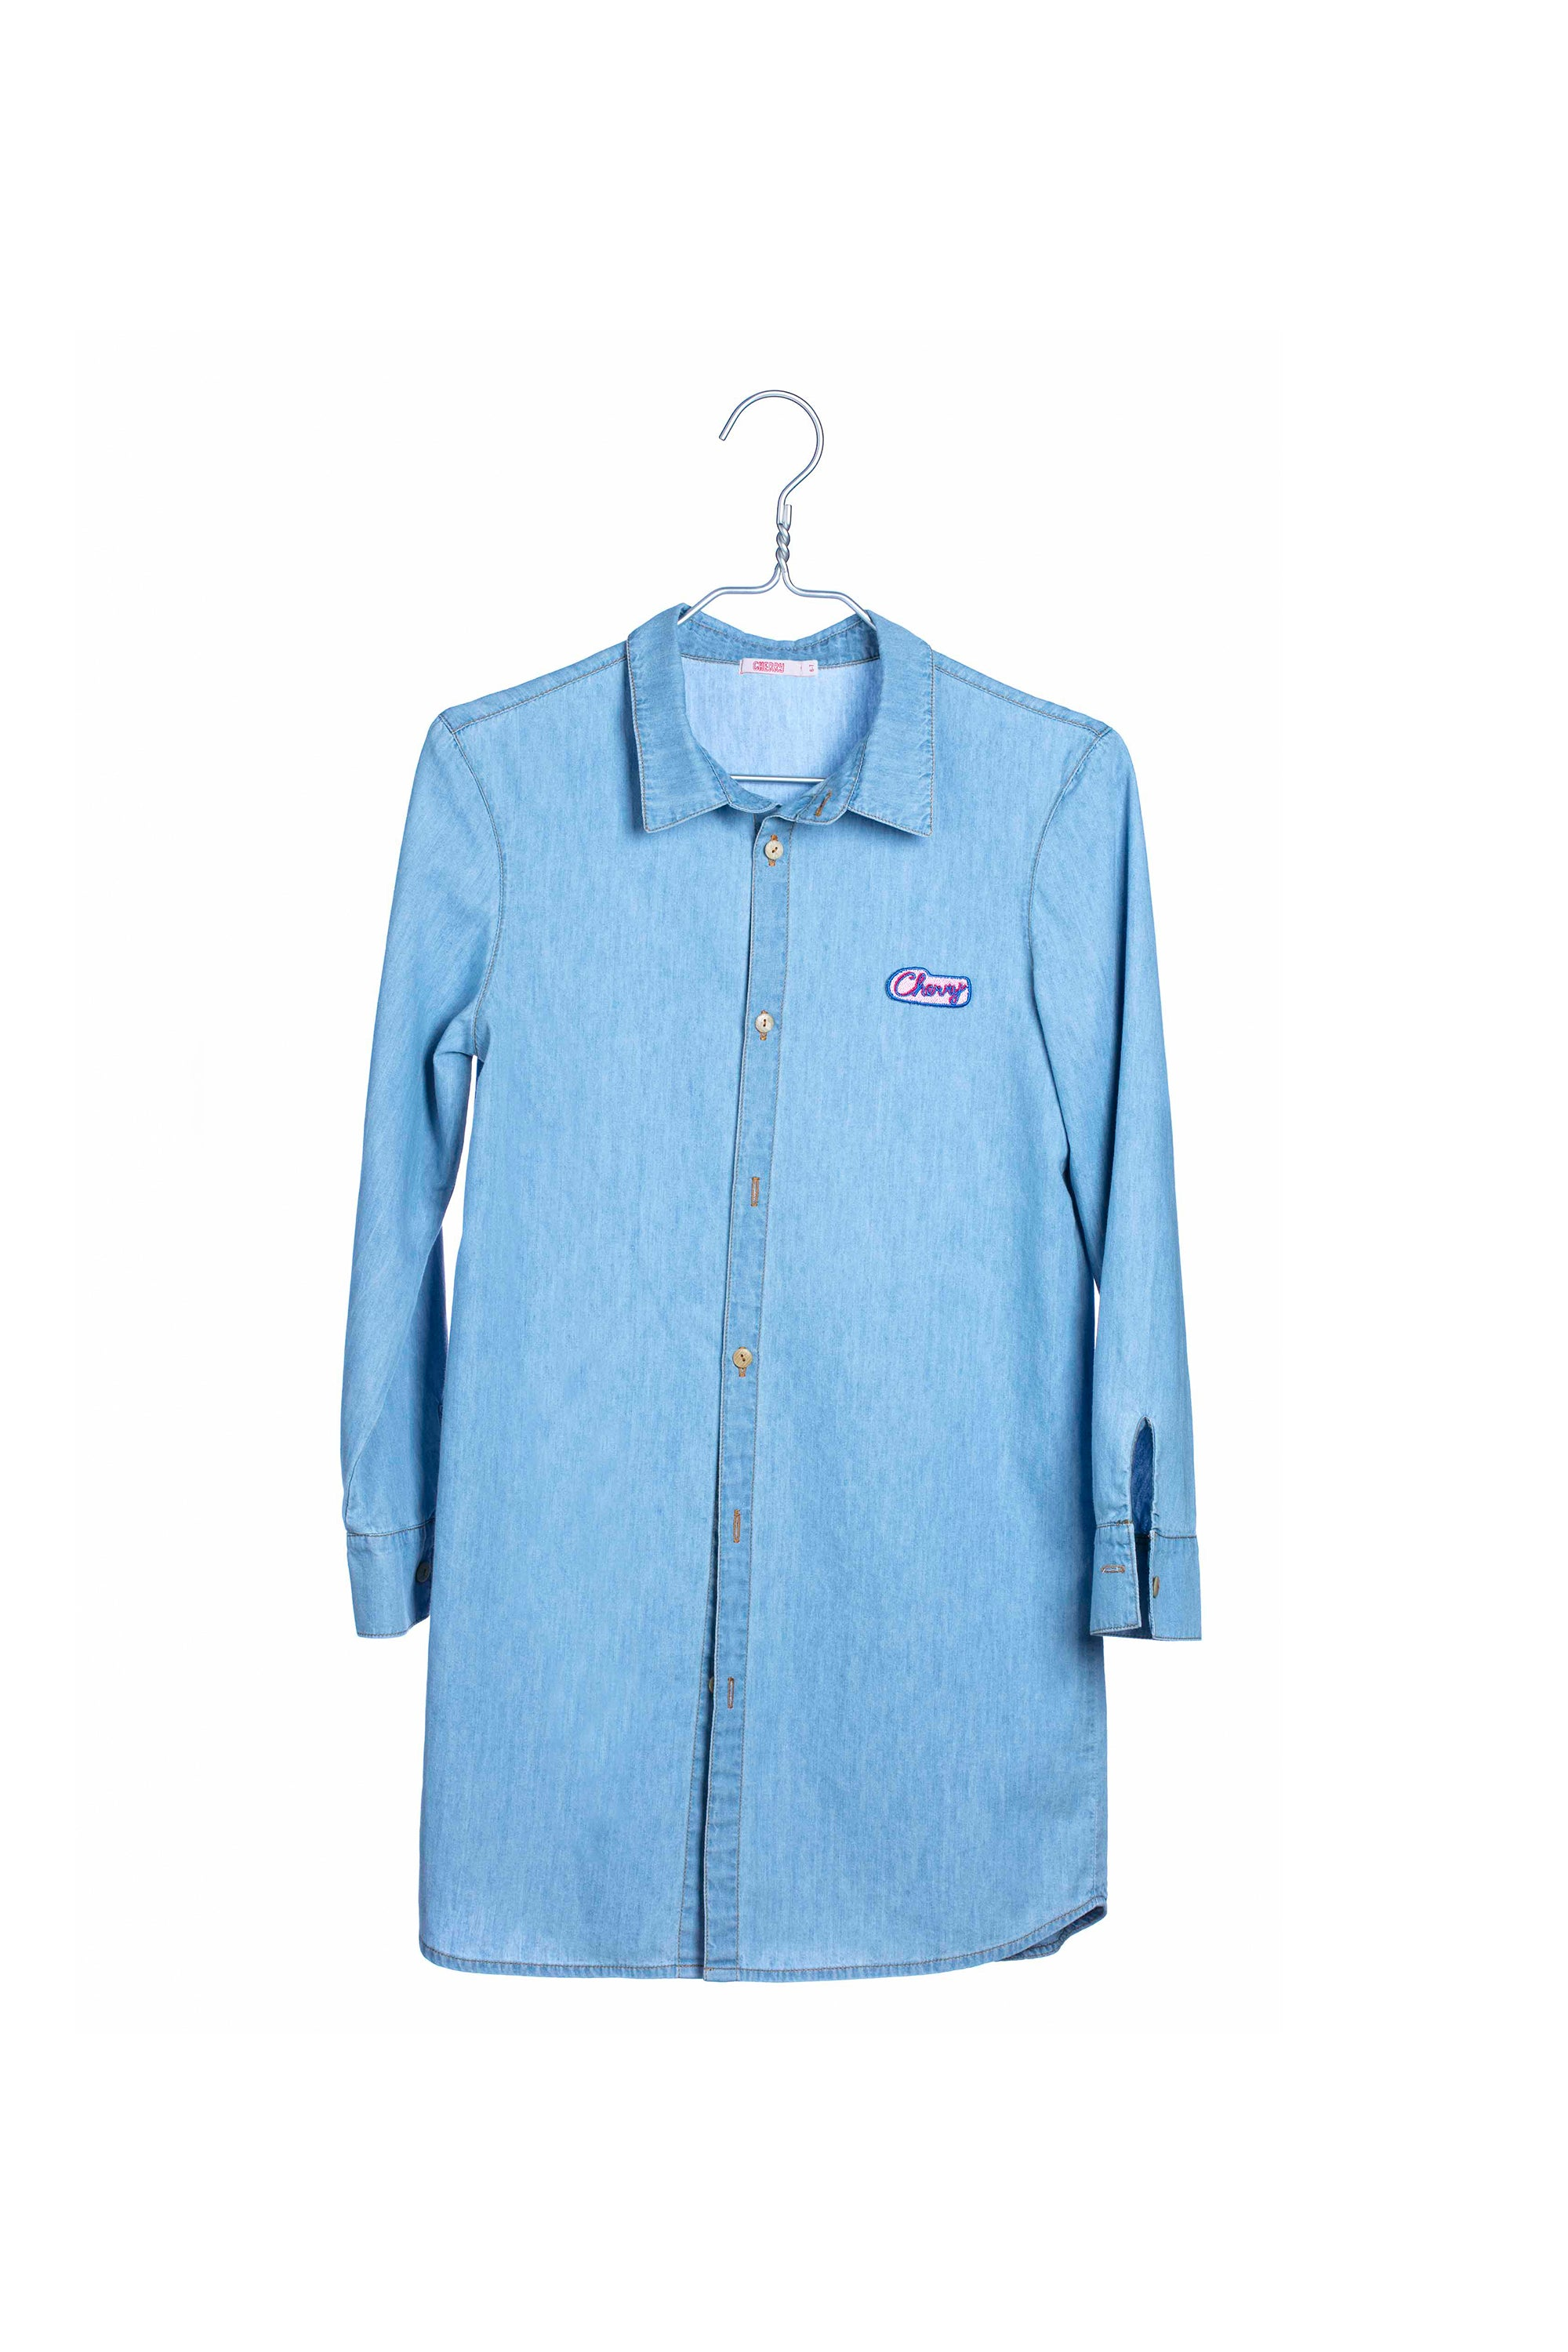 1722 Denim Shirt